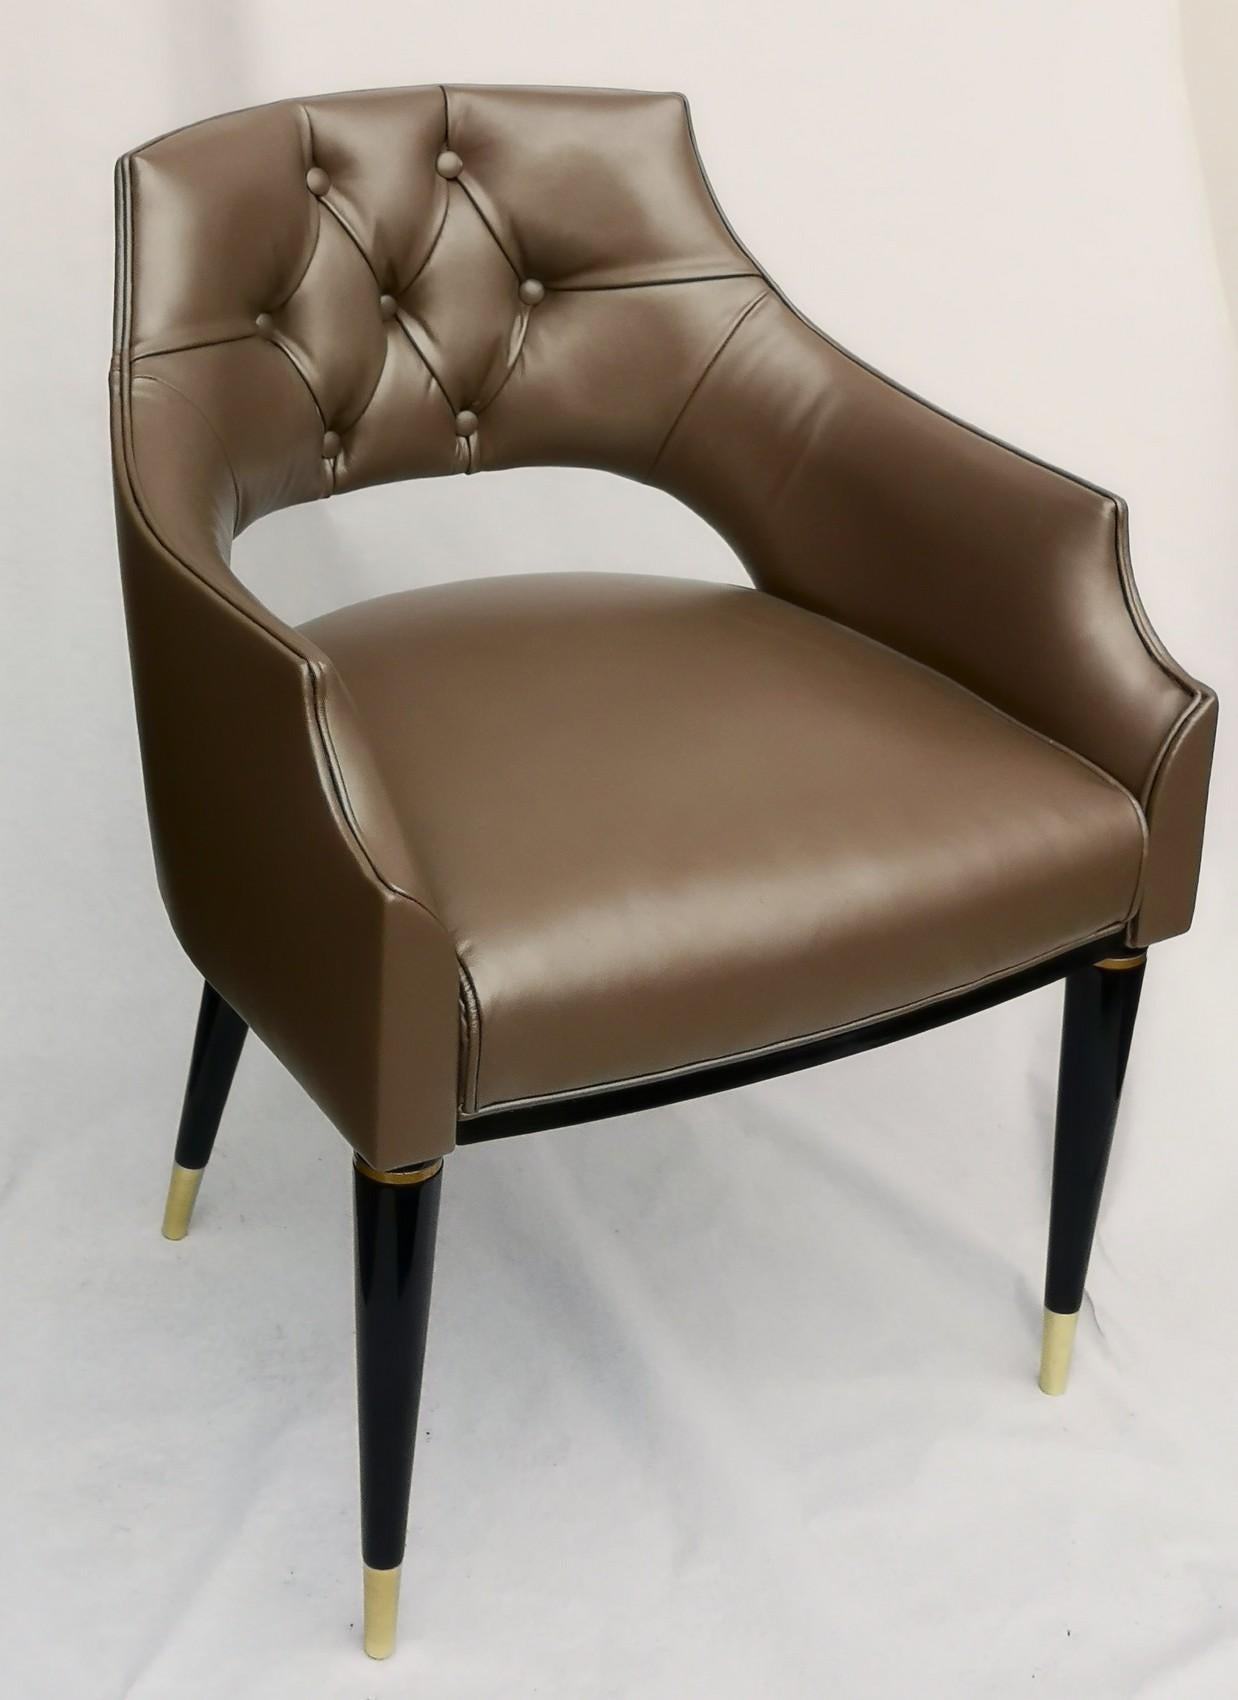 Dining Armchair Tufted Fiore Italian Leather Midcentury Style Luxury Details